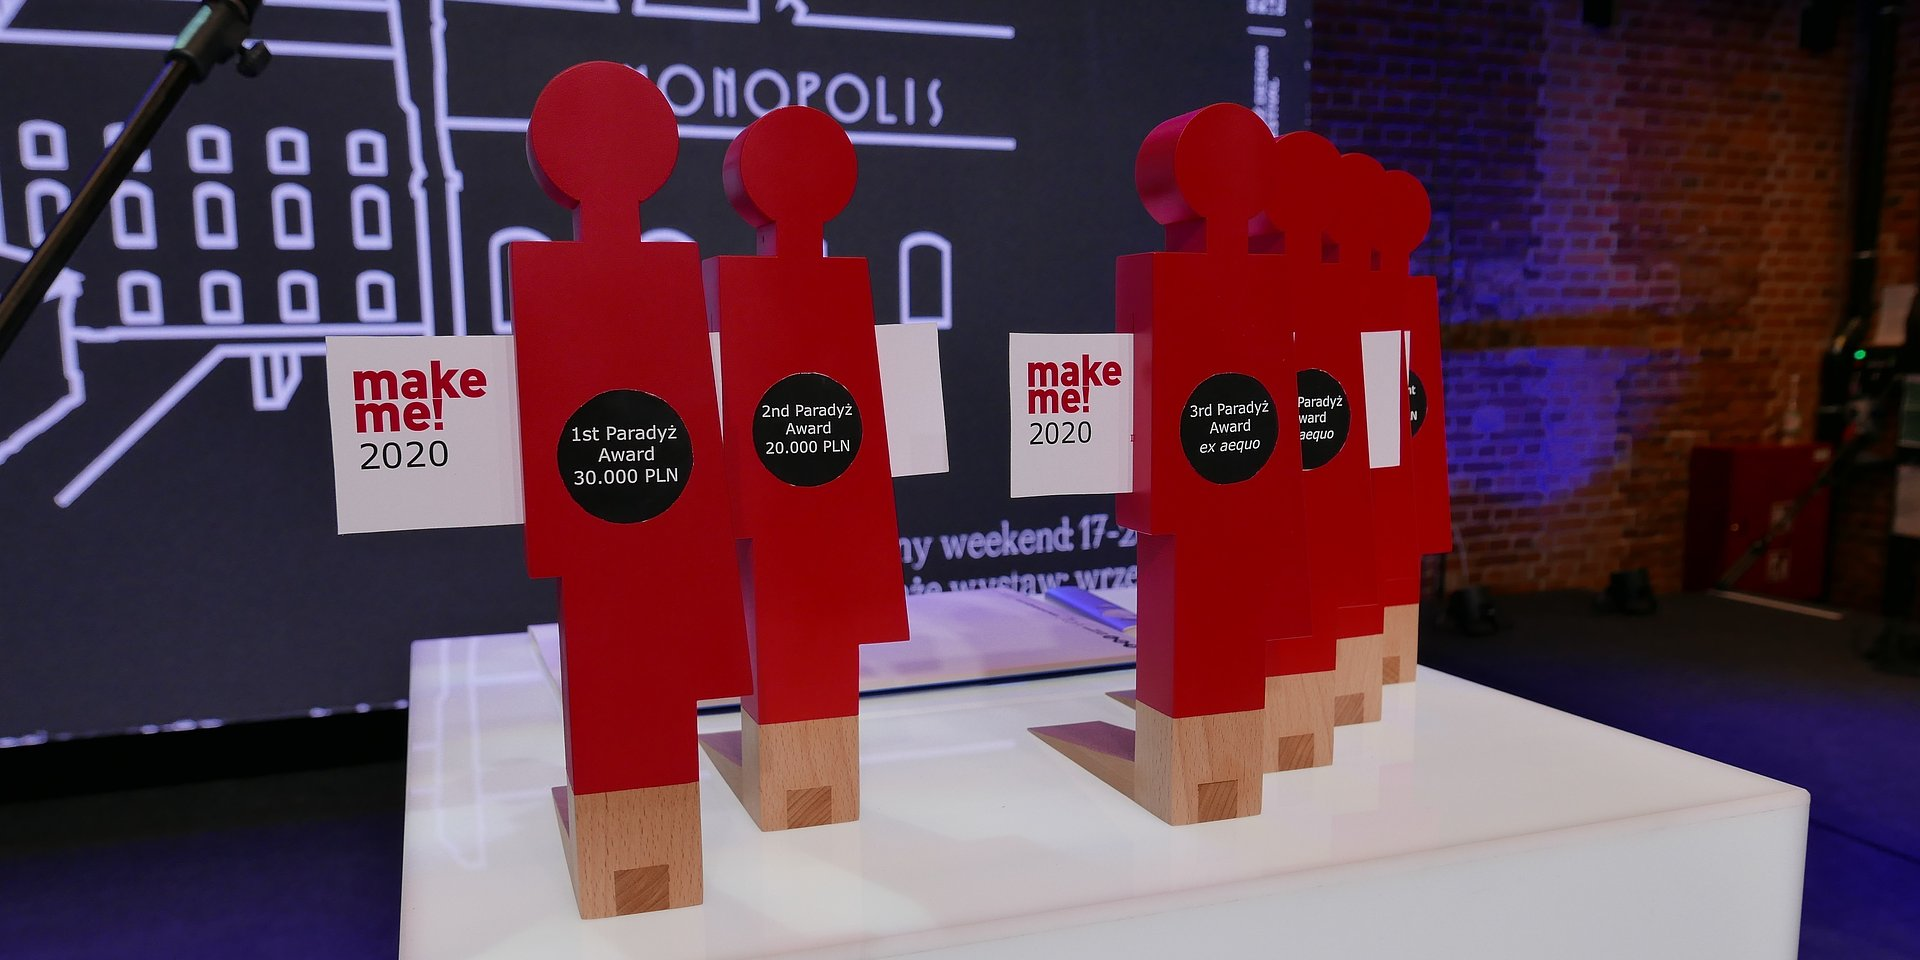 """Hope in the young - we know the results of the """"make me! 2020"""" competition"""